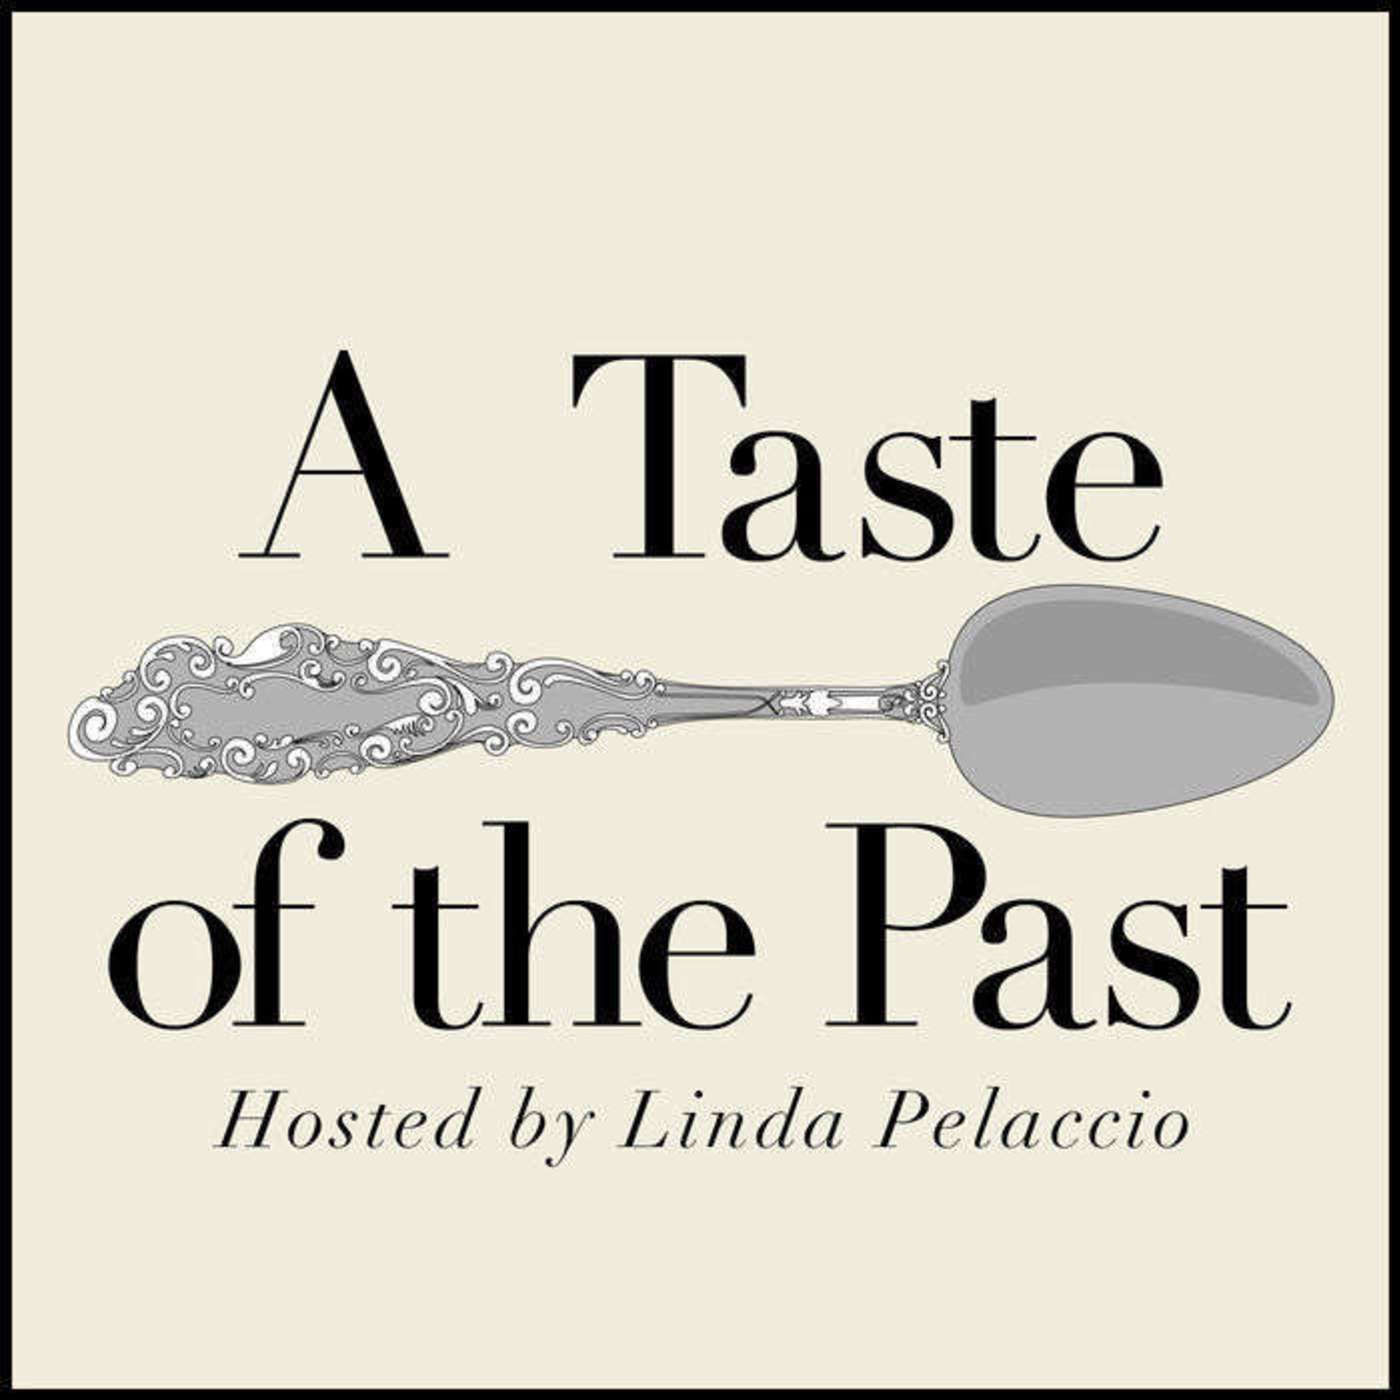 Episode 193: Women Behind the Food Sections